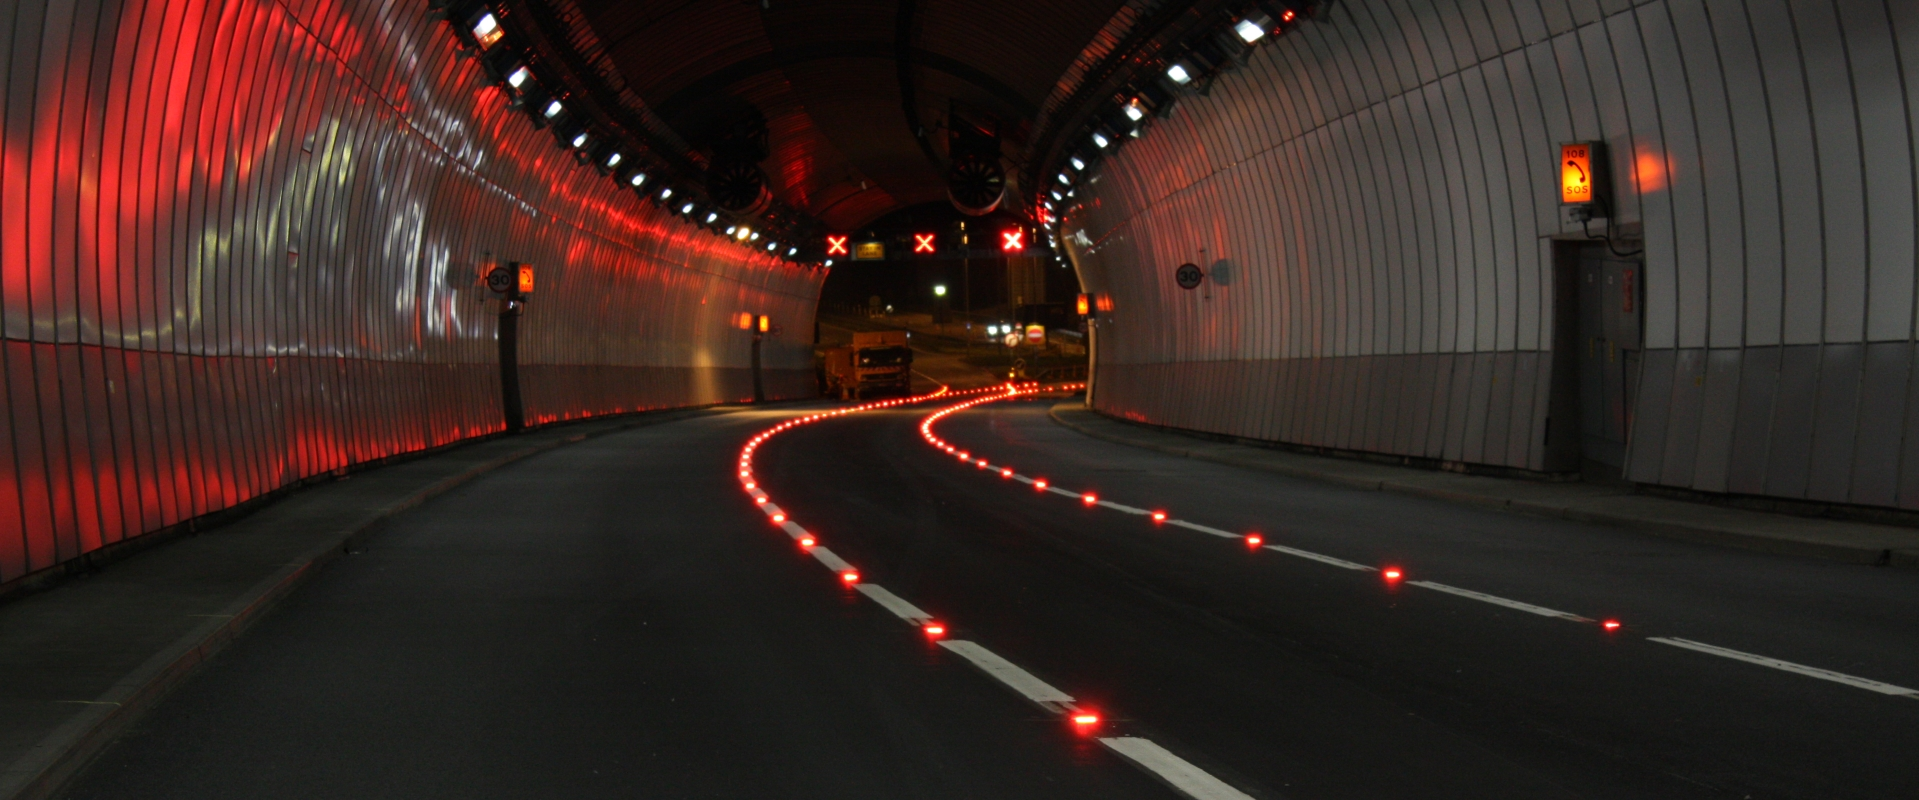 Saltash_Tunnel_guidance_lighting